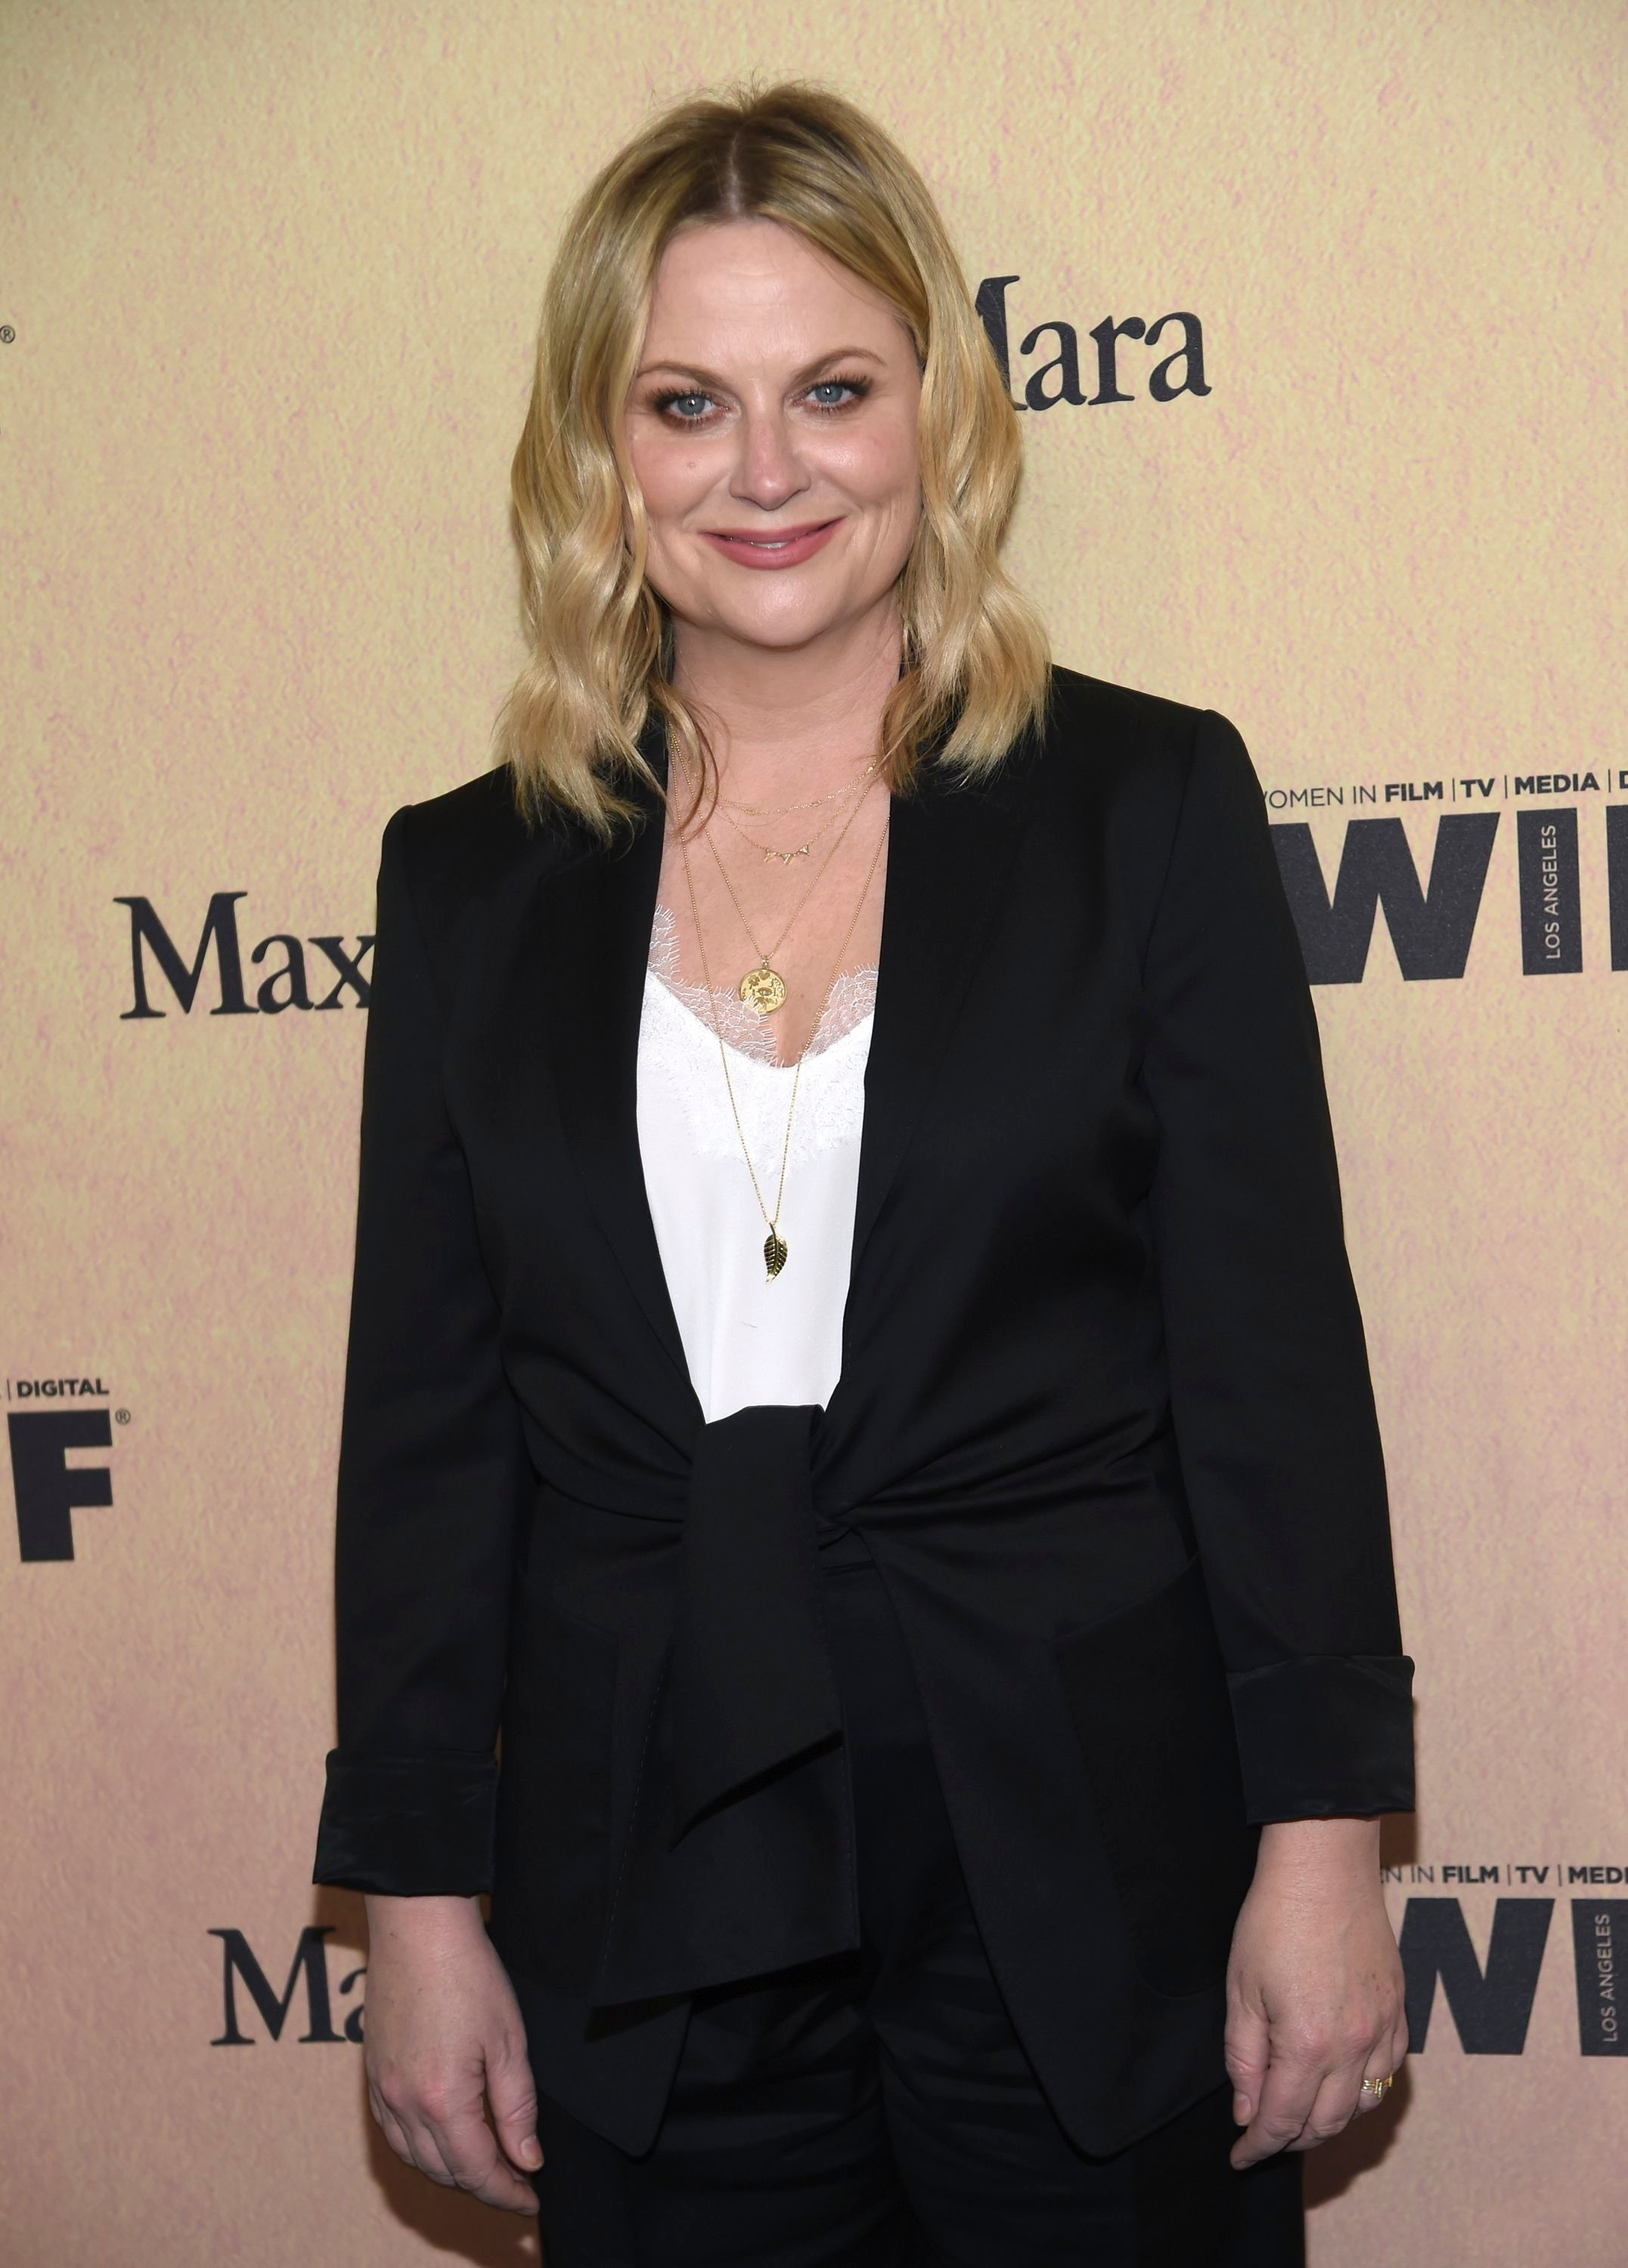 Amy Poehler attends the Women In Film Gala at the Beverly Hilton in Beverly Hills, California, on June 12, 2019.